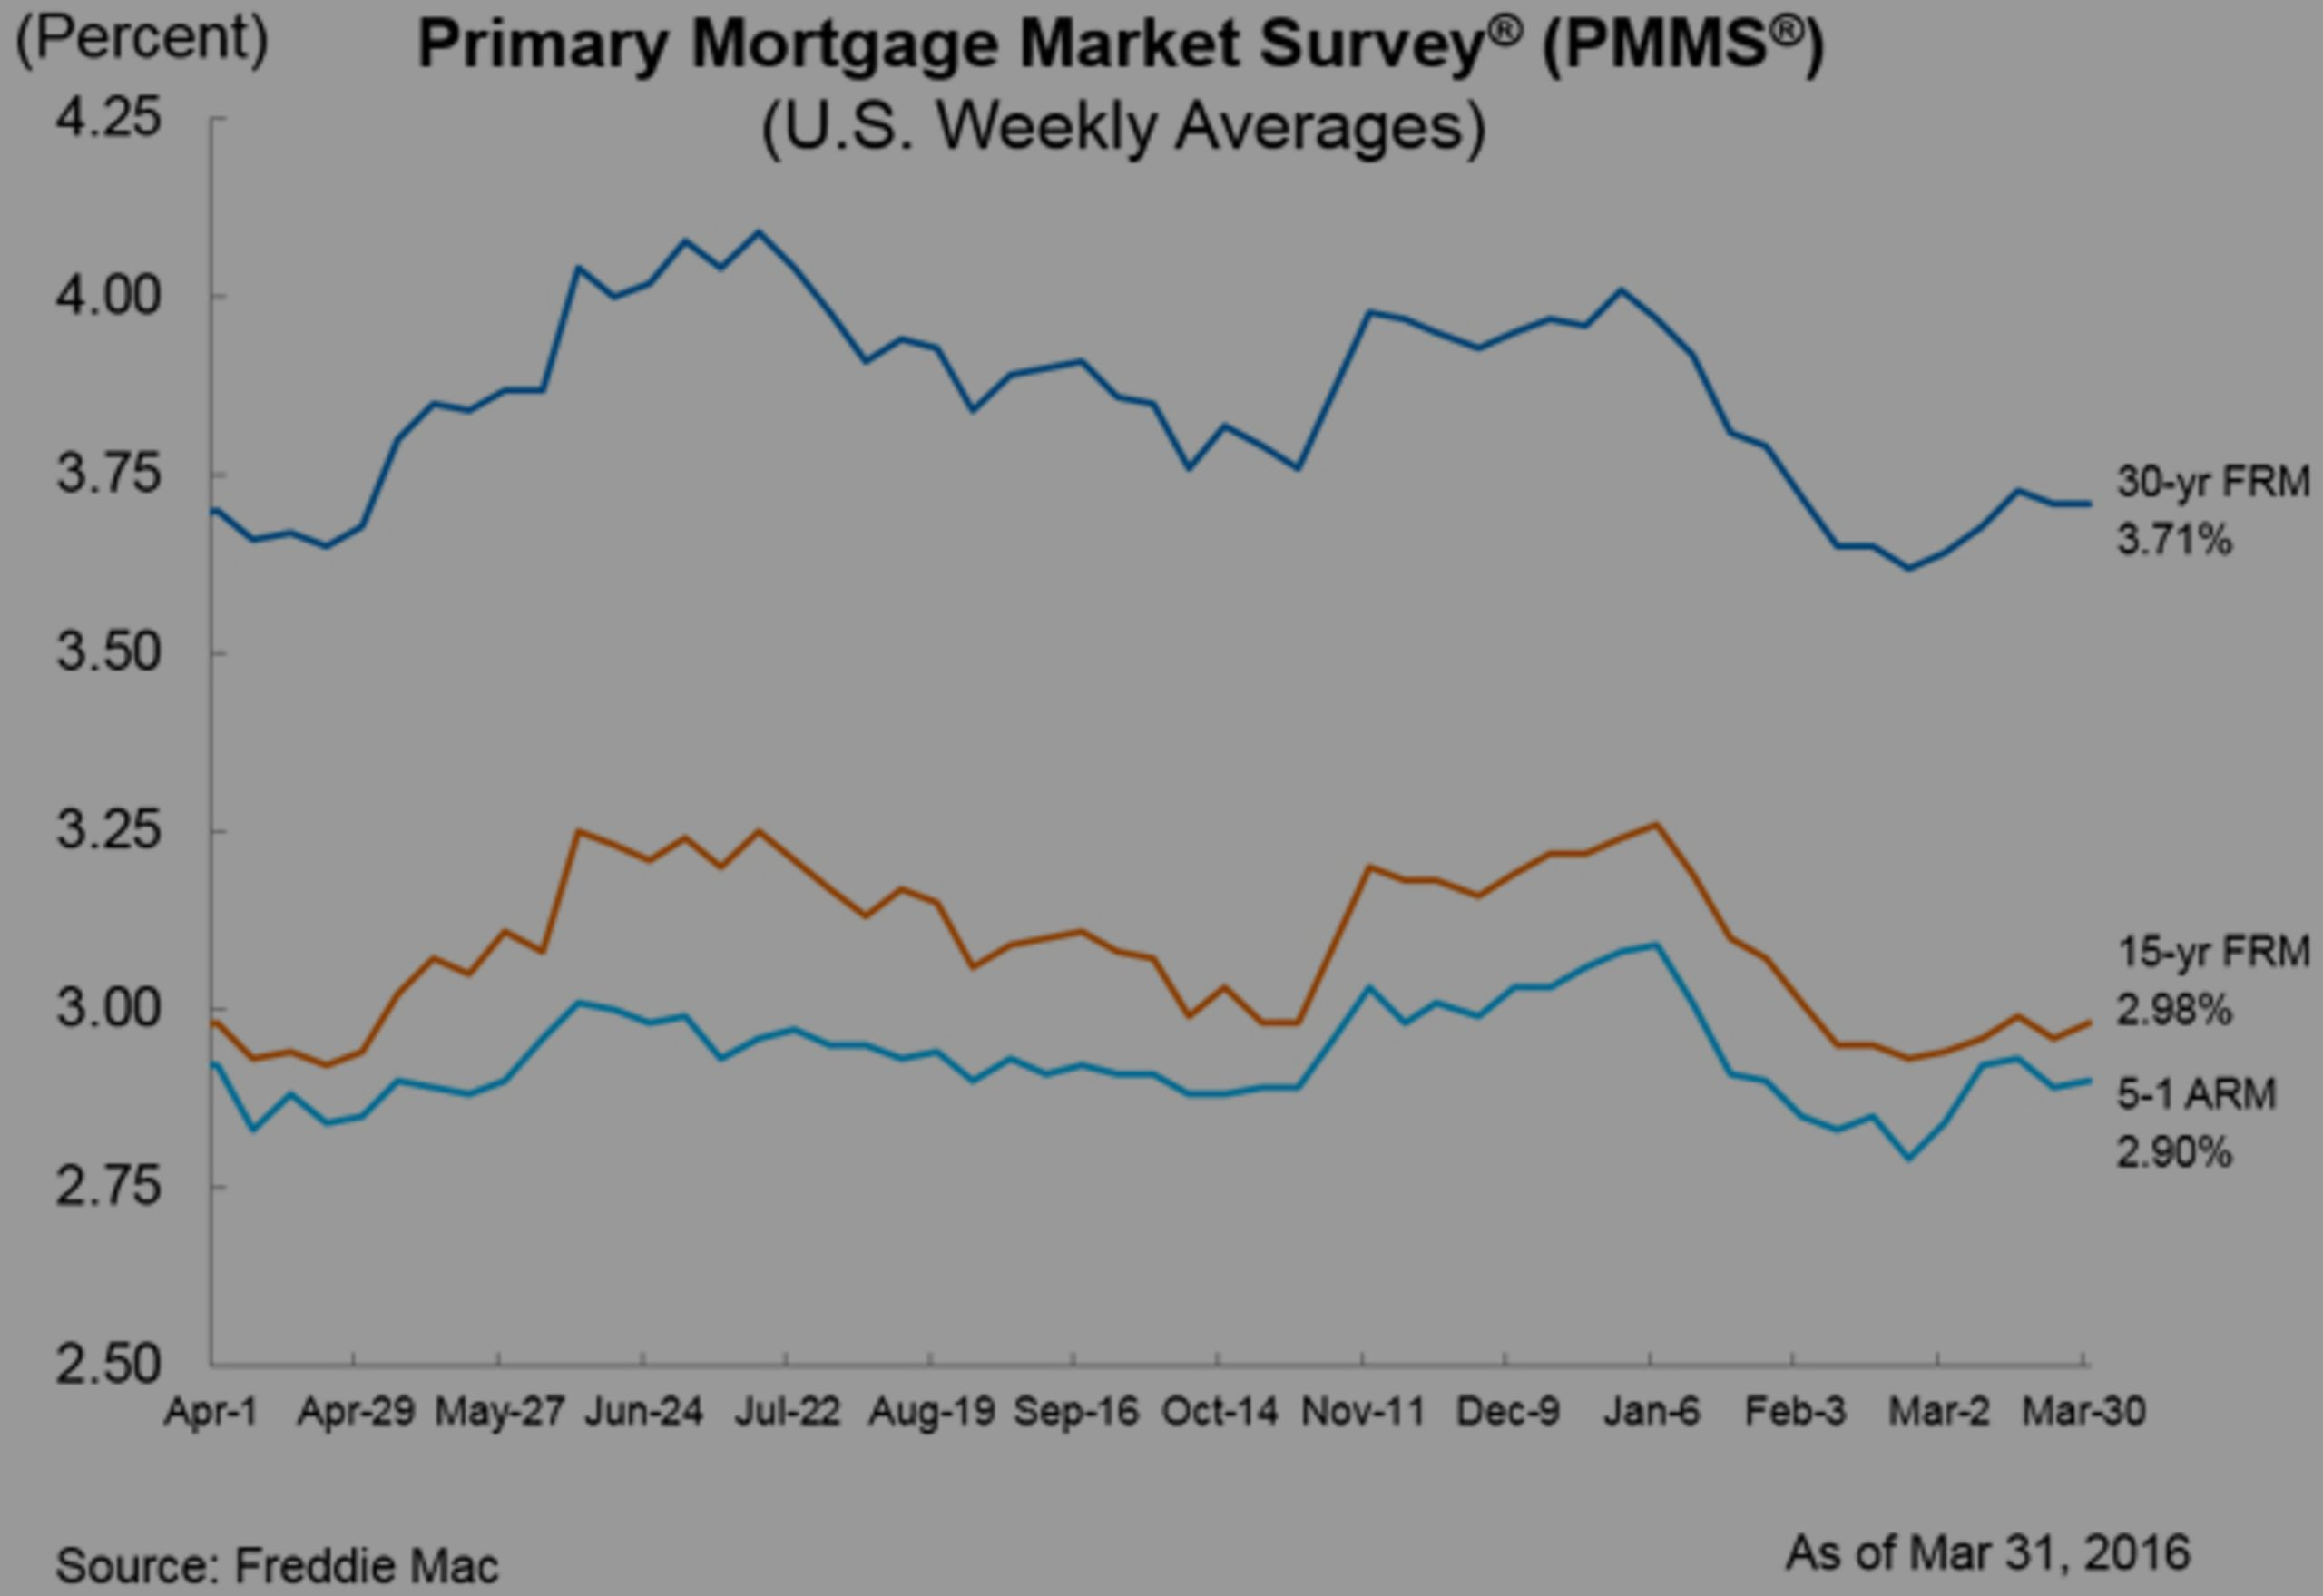 Low Mortgage Rates Fuel Fast Start to Spring Home Buying